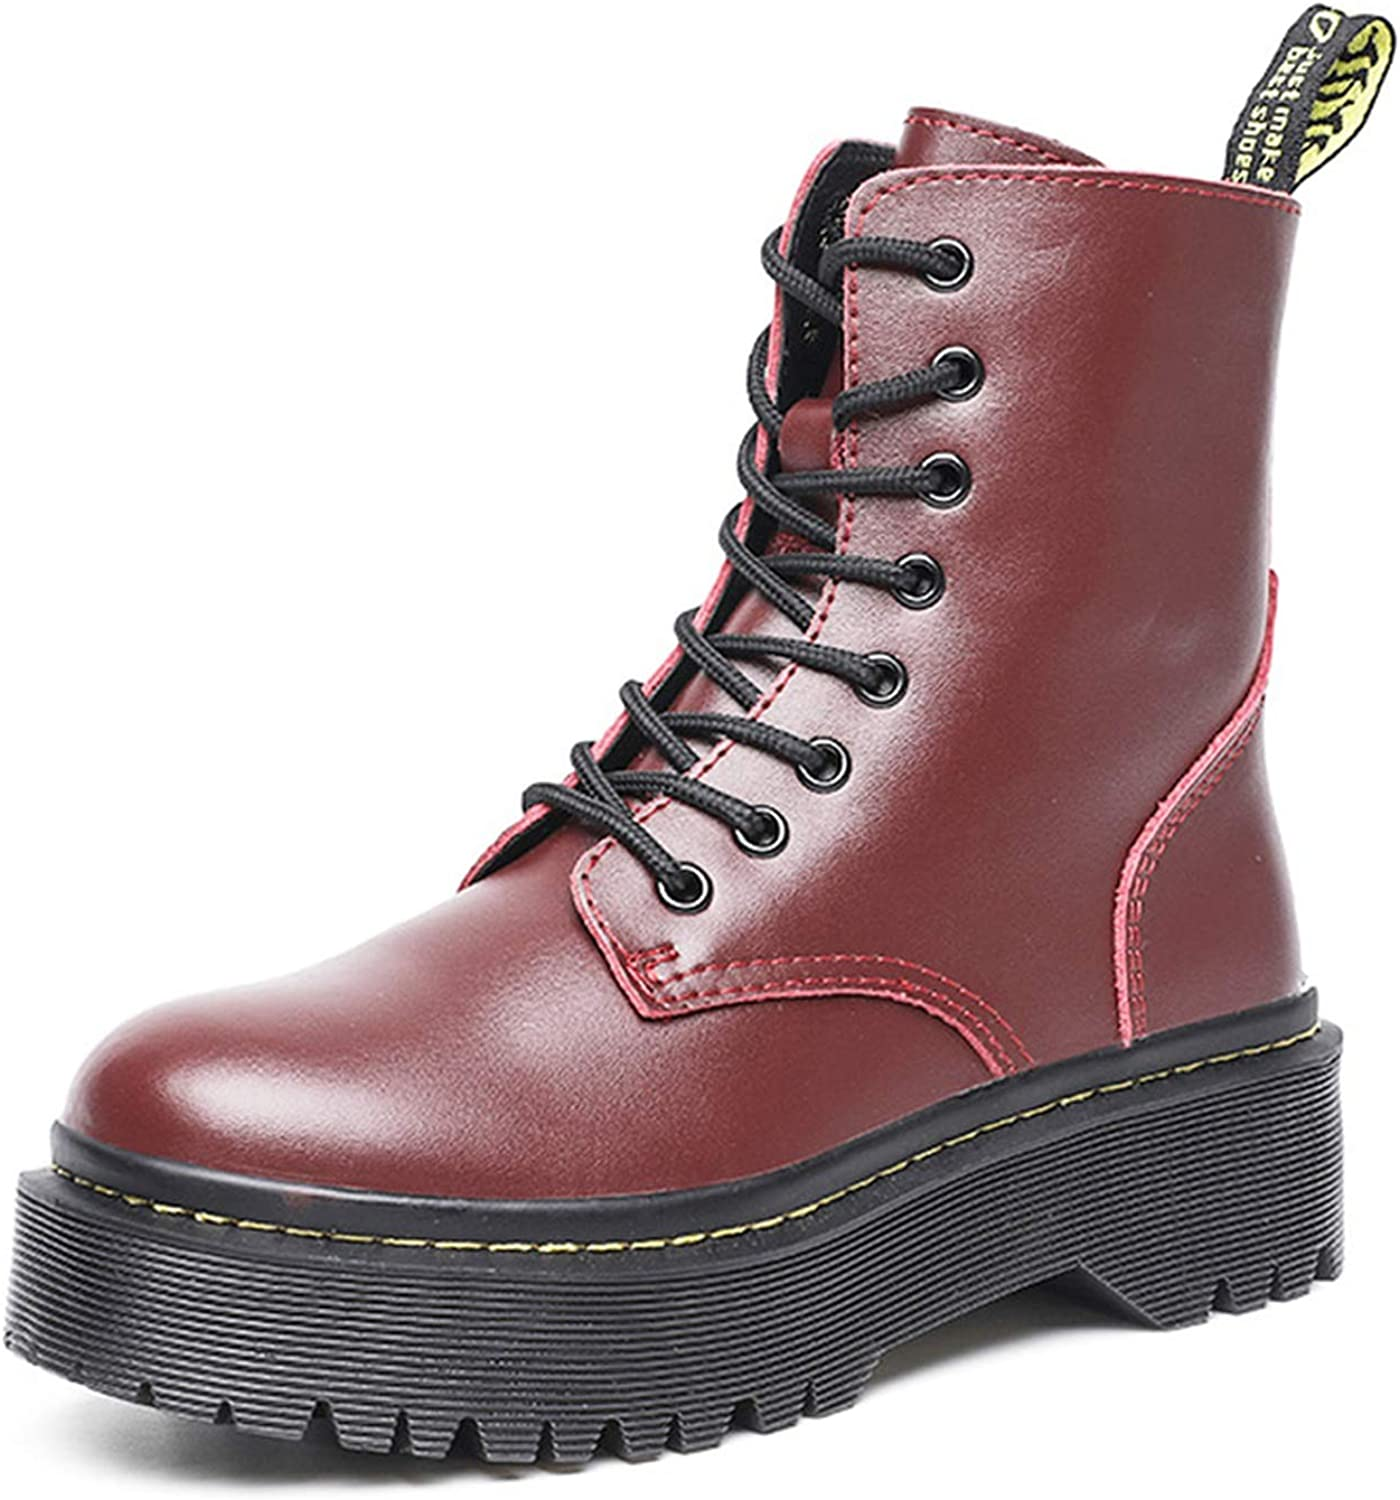 Women Boots Genuine Leather Ankle Boots with Flat Platform 01